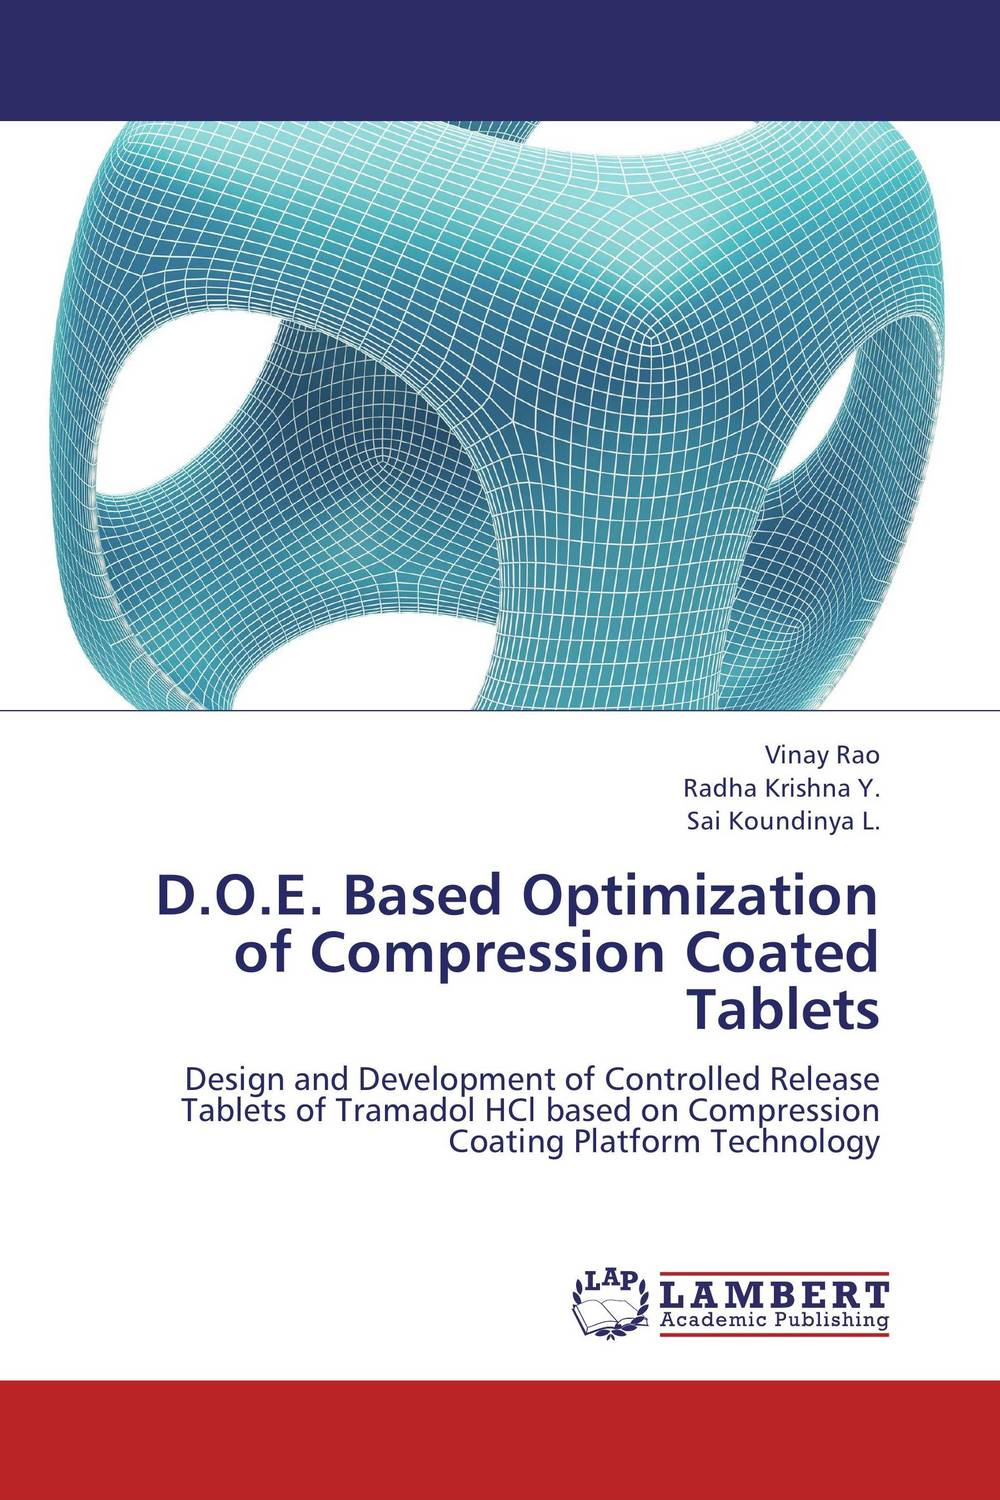 D.O.E. Based Optimization of Compression Coated Tablets the release